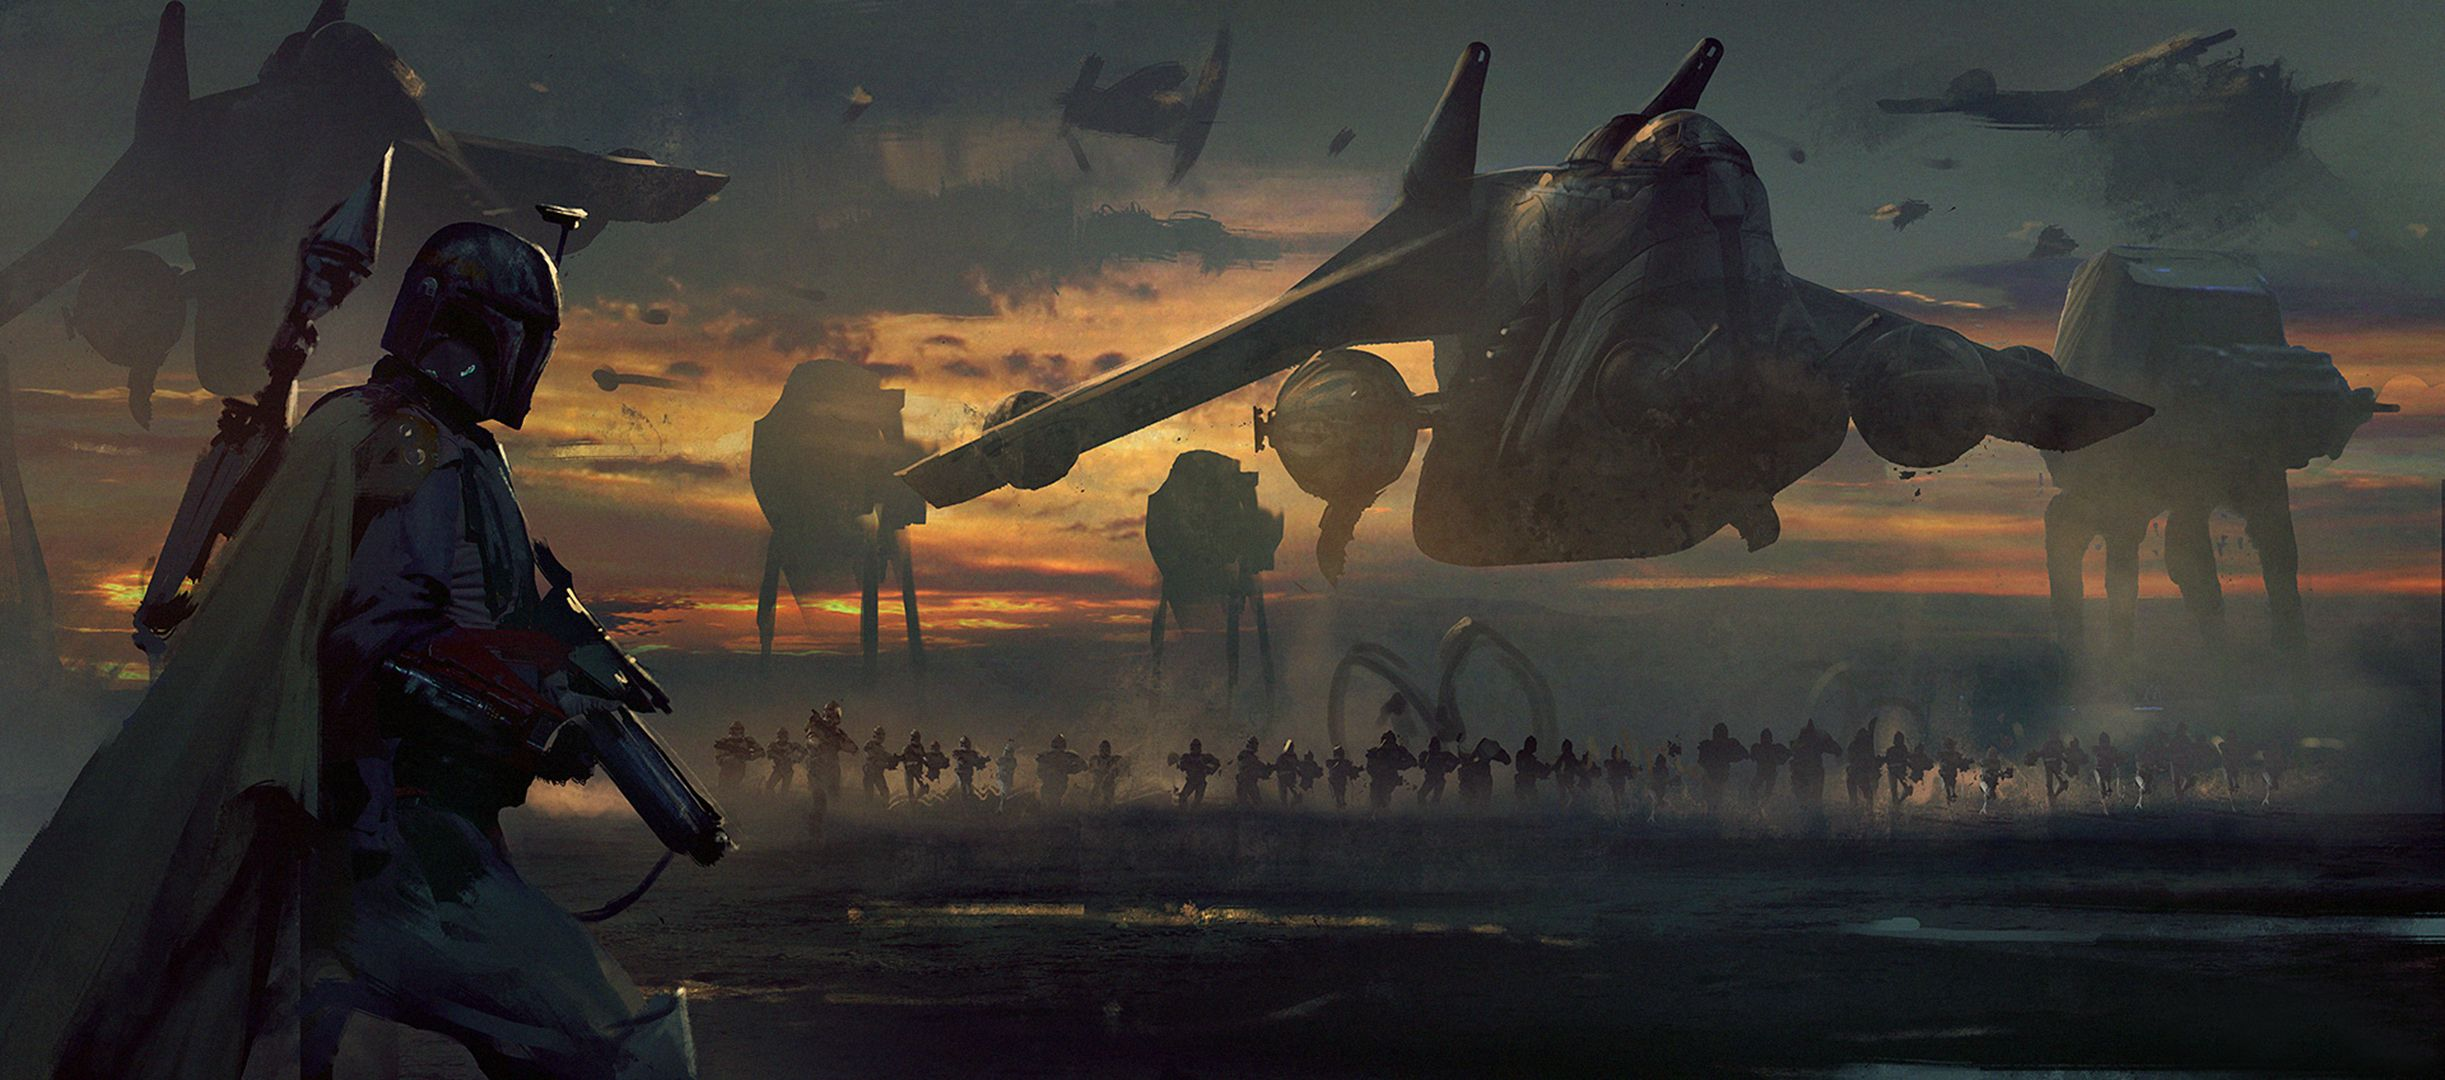 Star Wars Art Wallpaper Star Wars Concept Art Star Wars